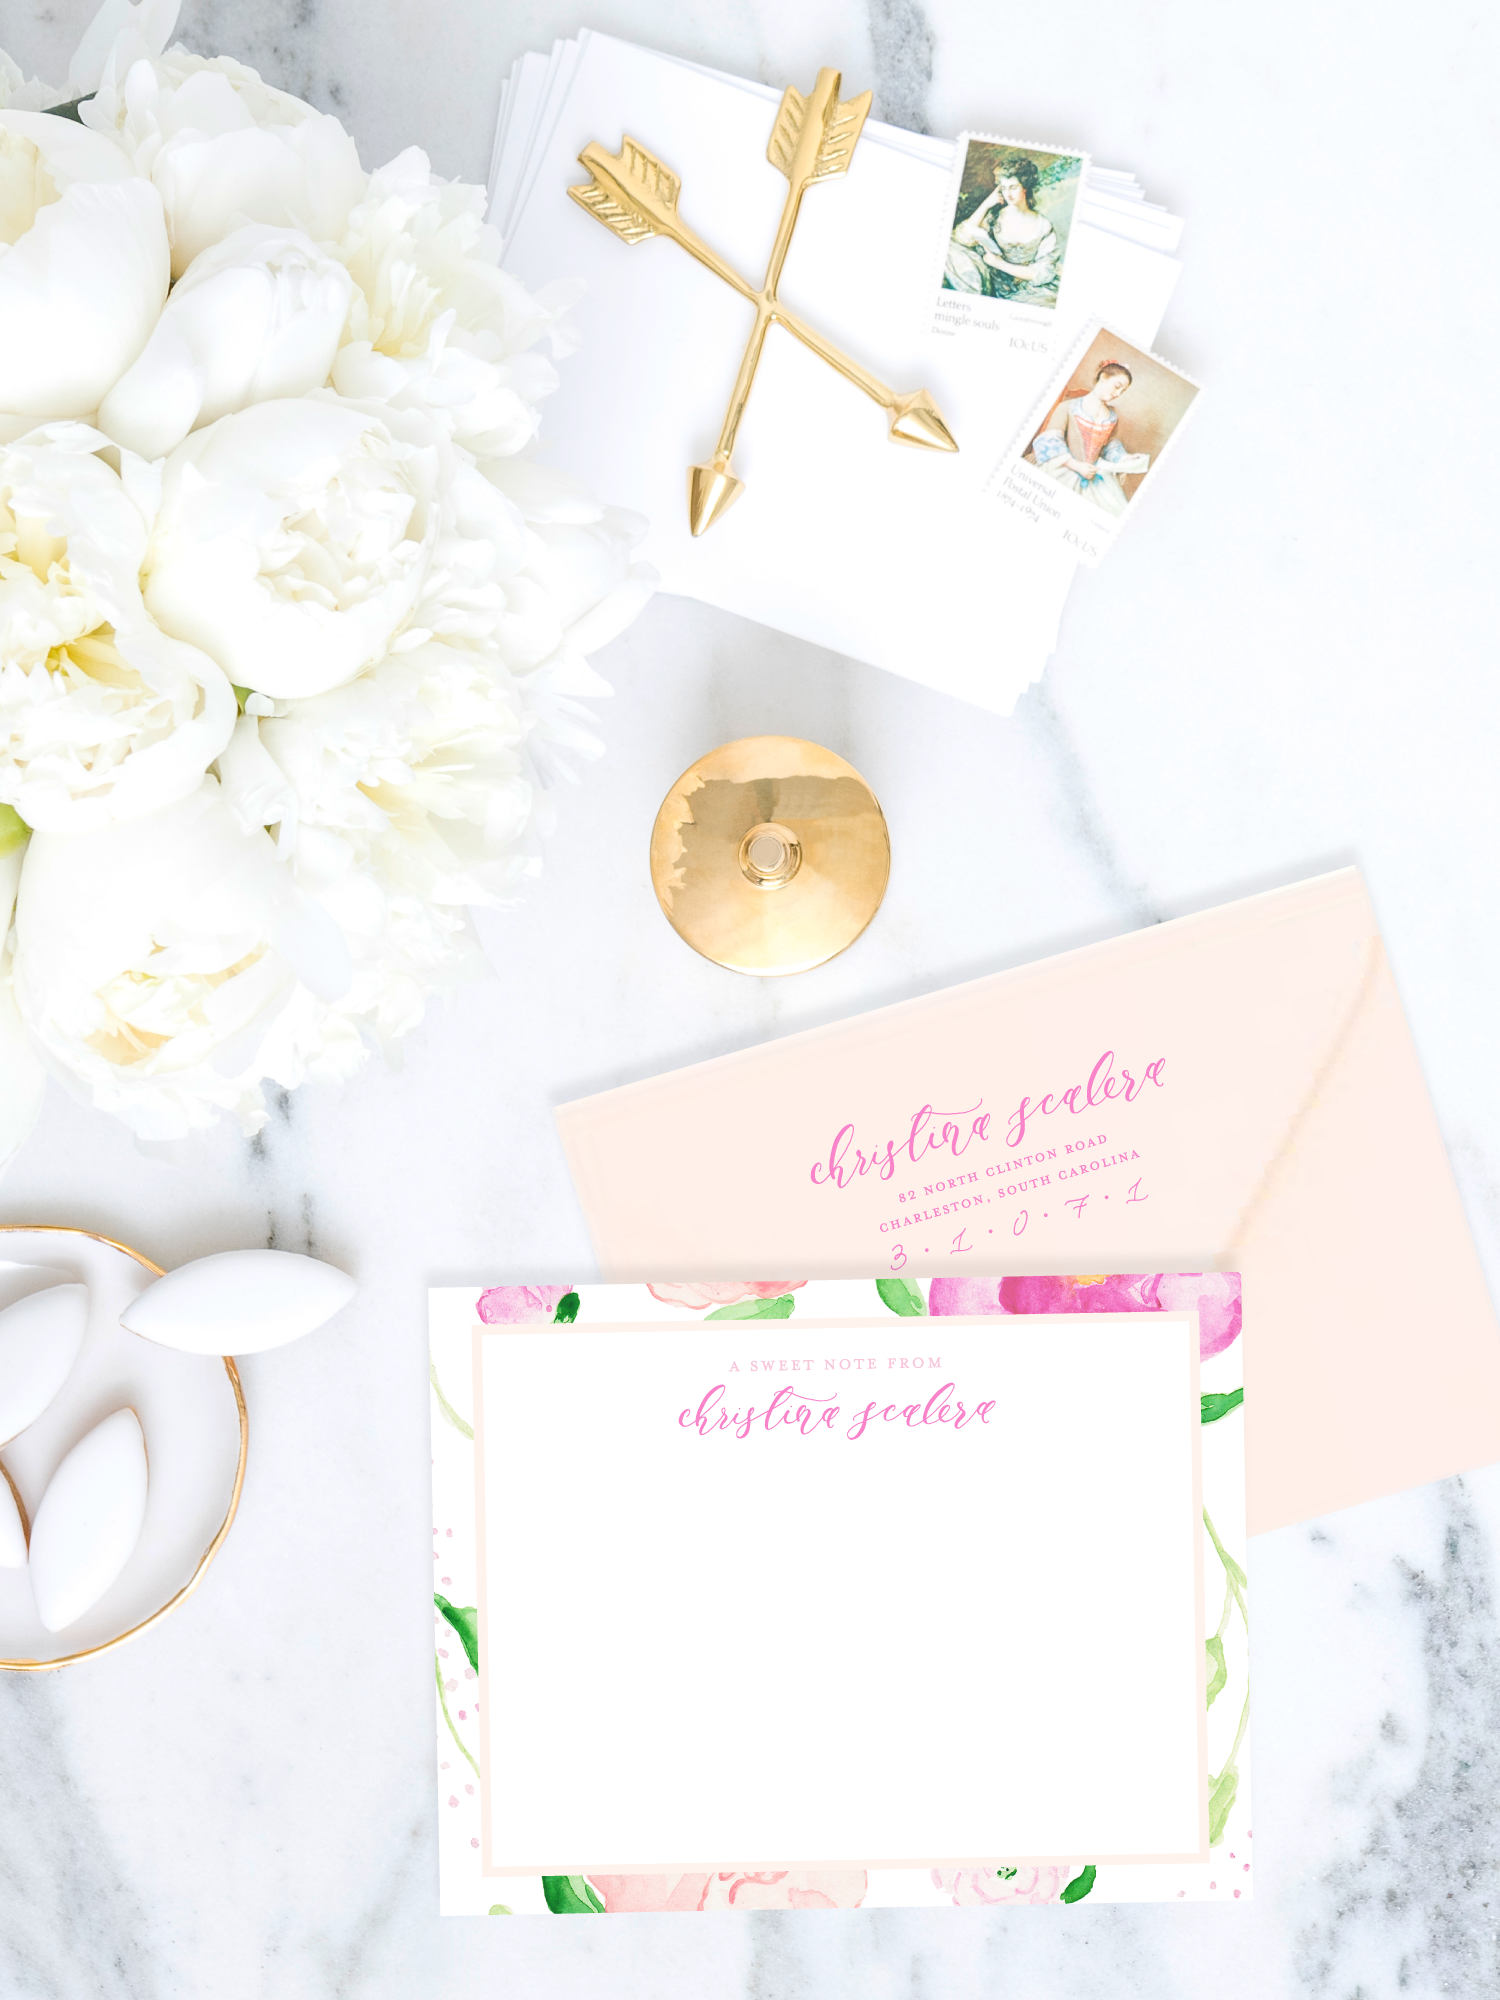 Personalized Watercolor and Calligraphy Stationery and Calligraphy Return Address Stamp Set by Simply Jessica Marie